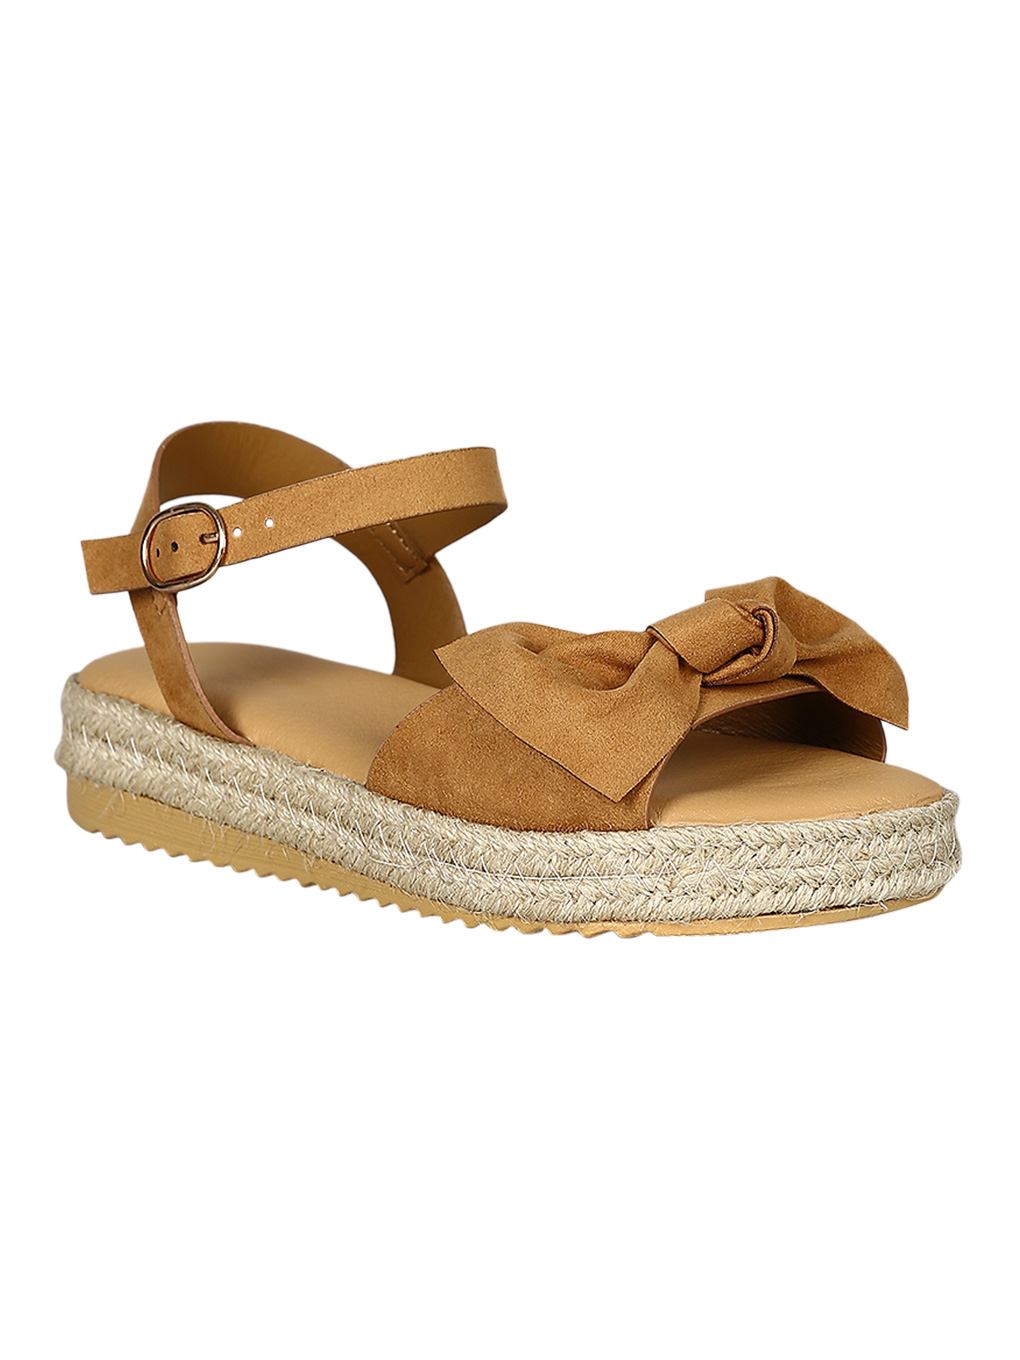 Women Open Toe Bow Accent Espadrille Flatform Sandal